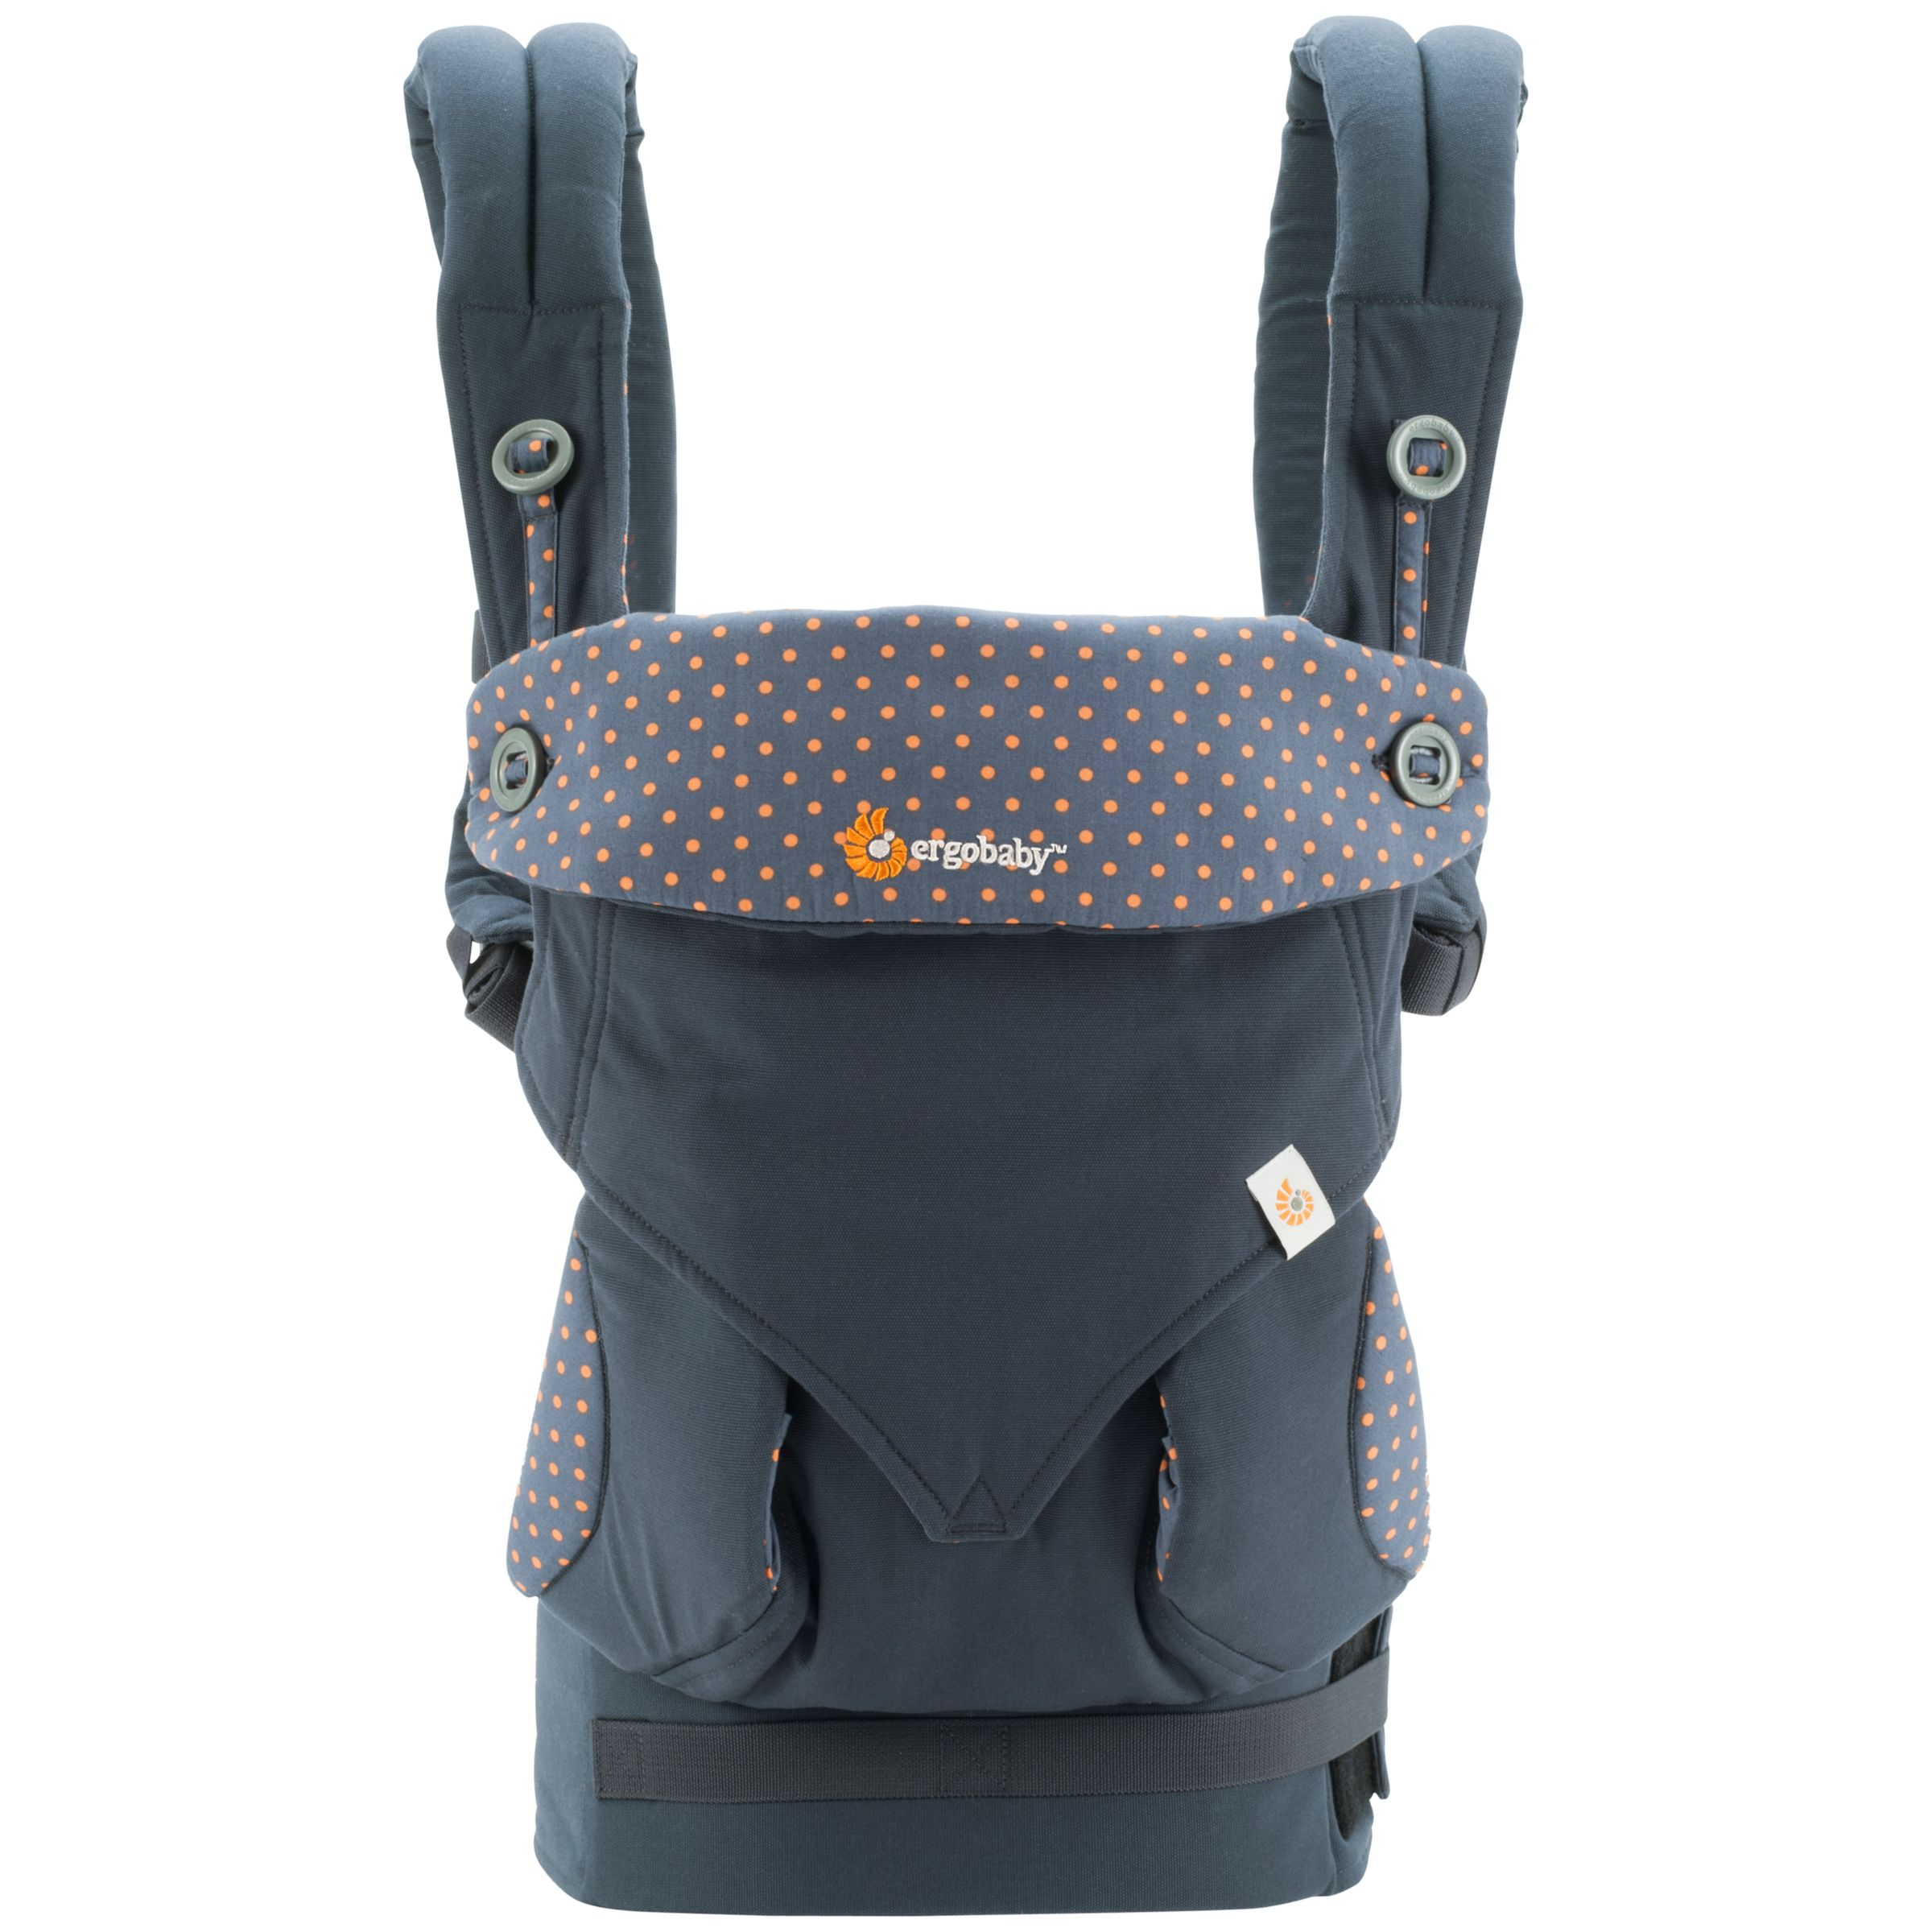 Ergobaby Ergobaby Four Position 360 Baby Carrier, Dusty Blue